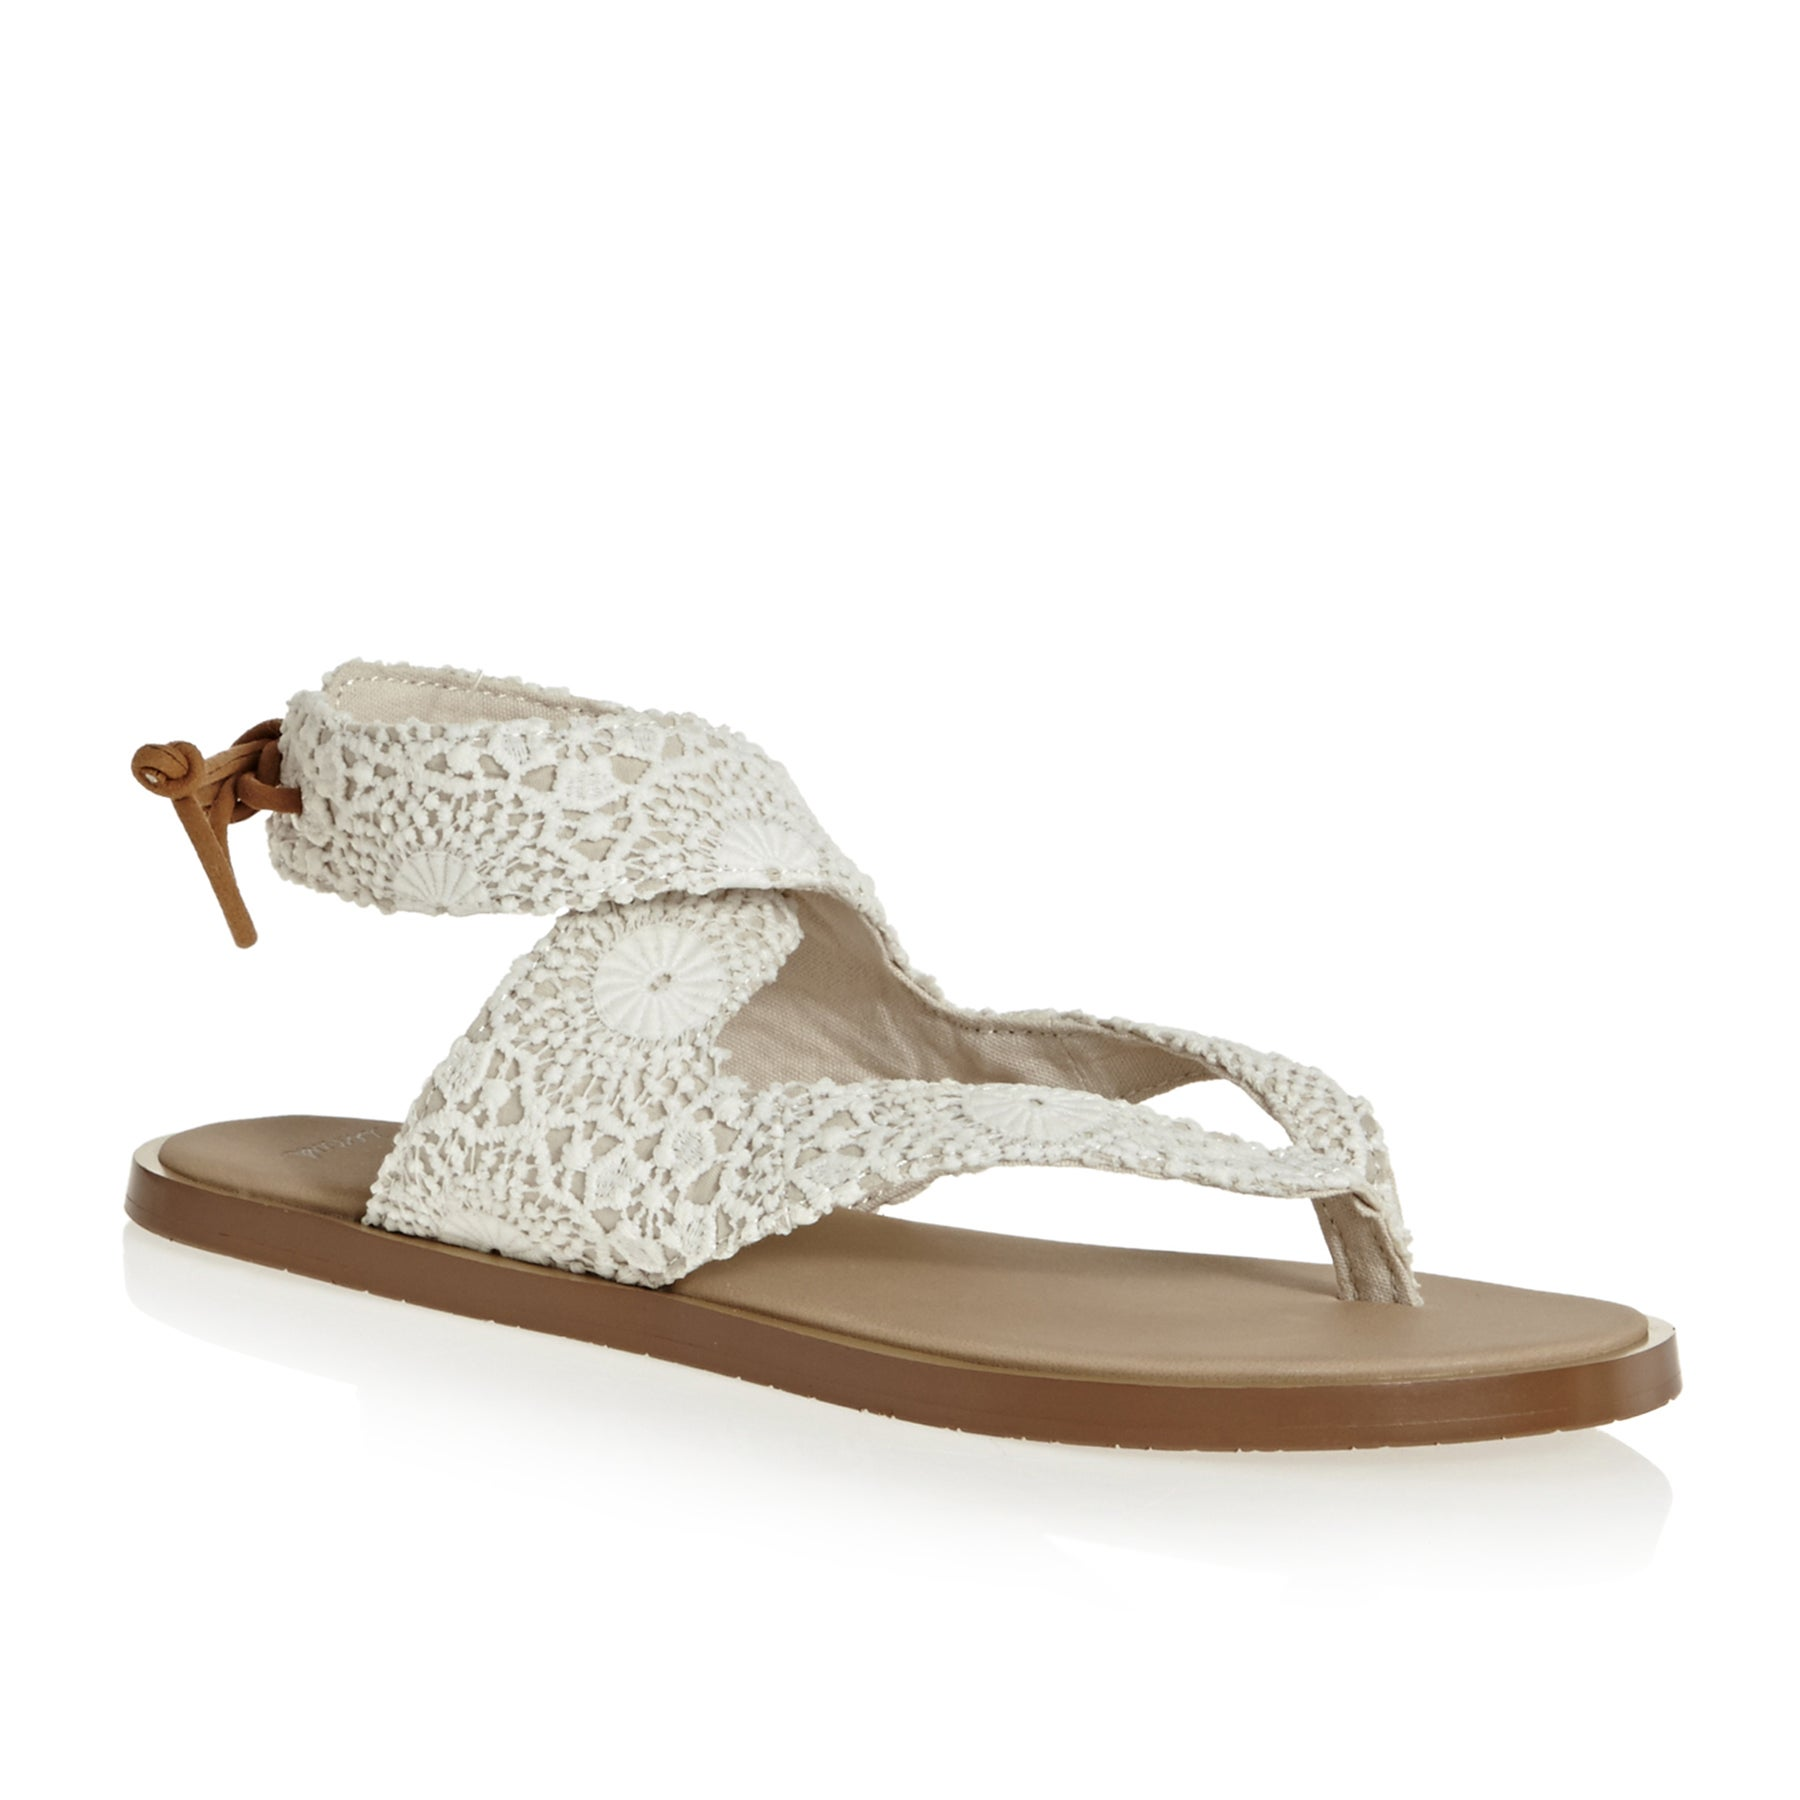 Sanuk W Yoga Mariposa Crochet Womens Sandals - White / Oatmeal